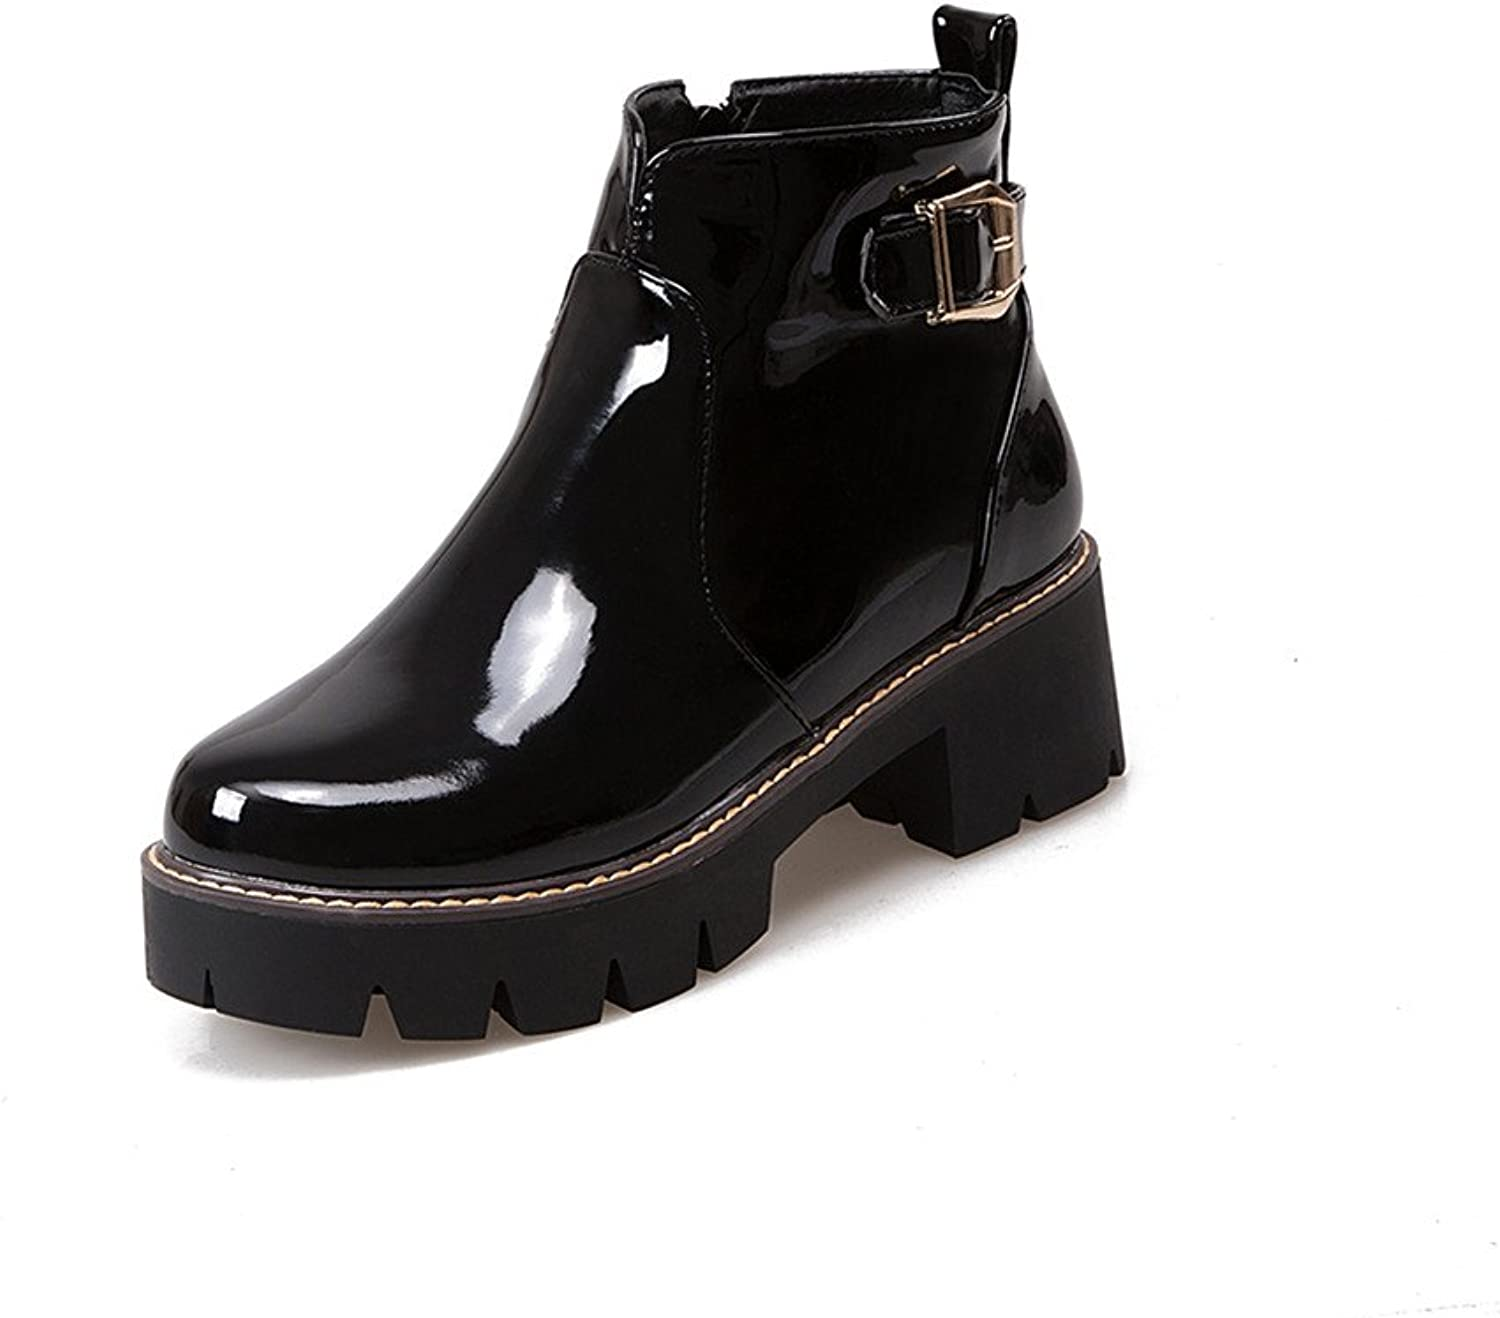 Lucksender Womens Patent Leather Buckle Side Zip Square Heel Platform Ankle High Boots